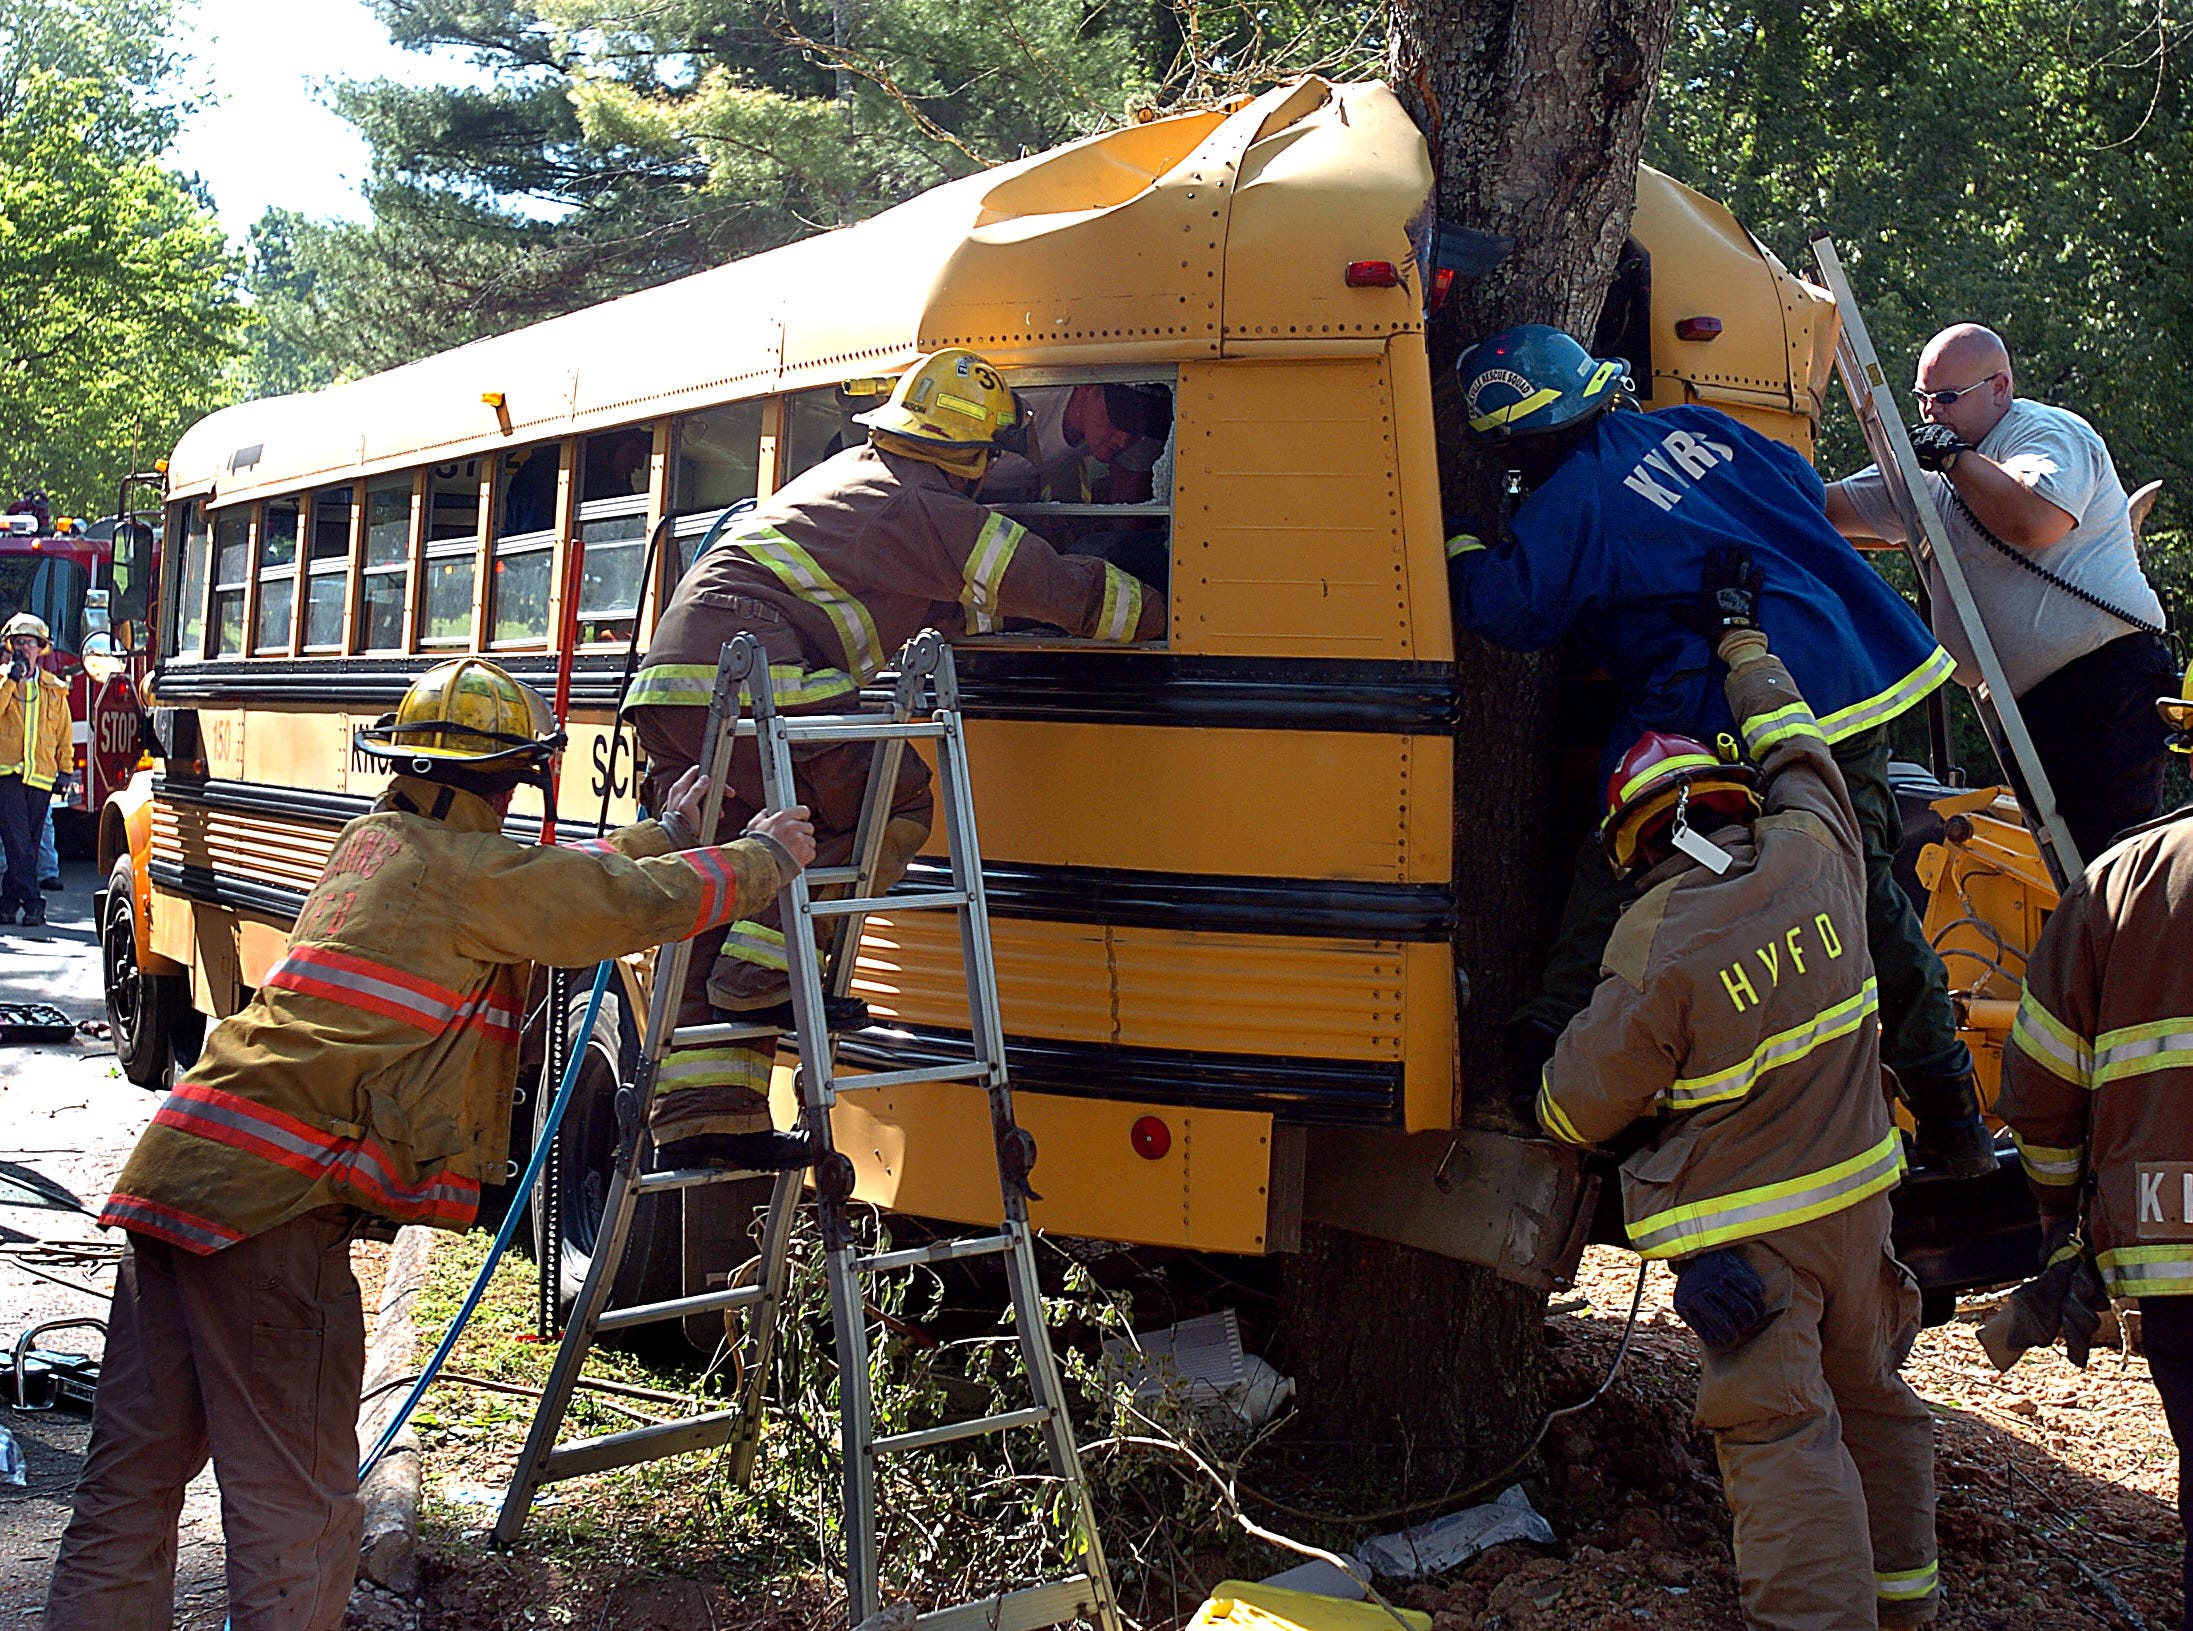 Knox County School bus #150 lost power and rolled back into a tree on Glastonbury Rd in Northwest Knox County Wednesday, May 11, 2005 pinning one student in the bus for about an hour.